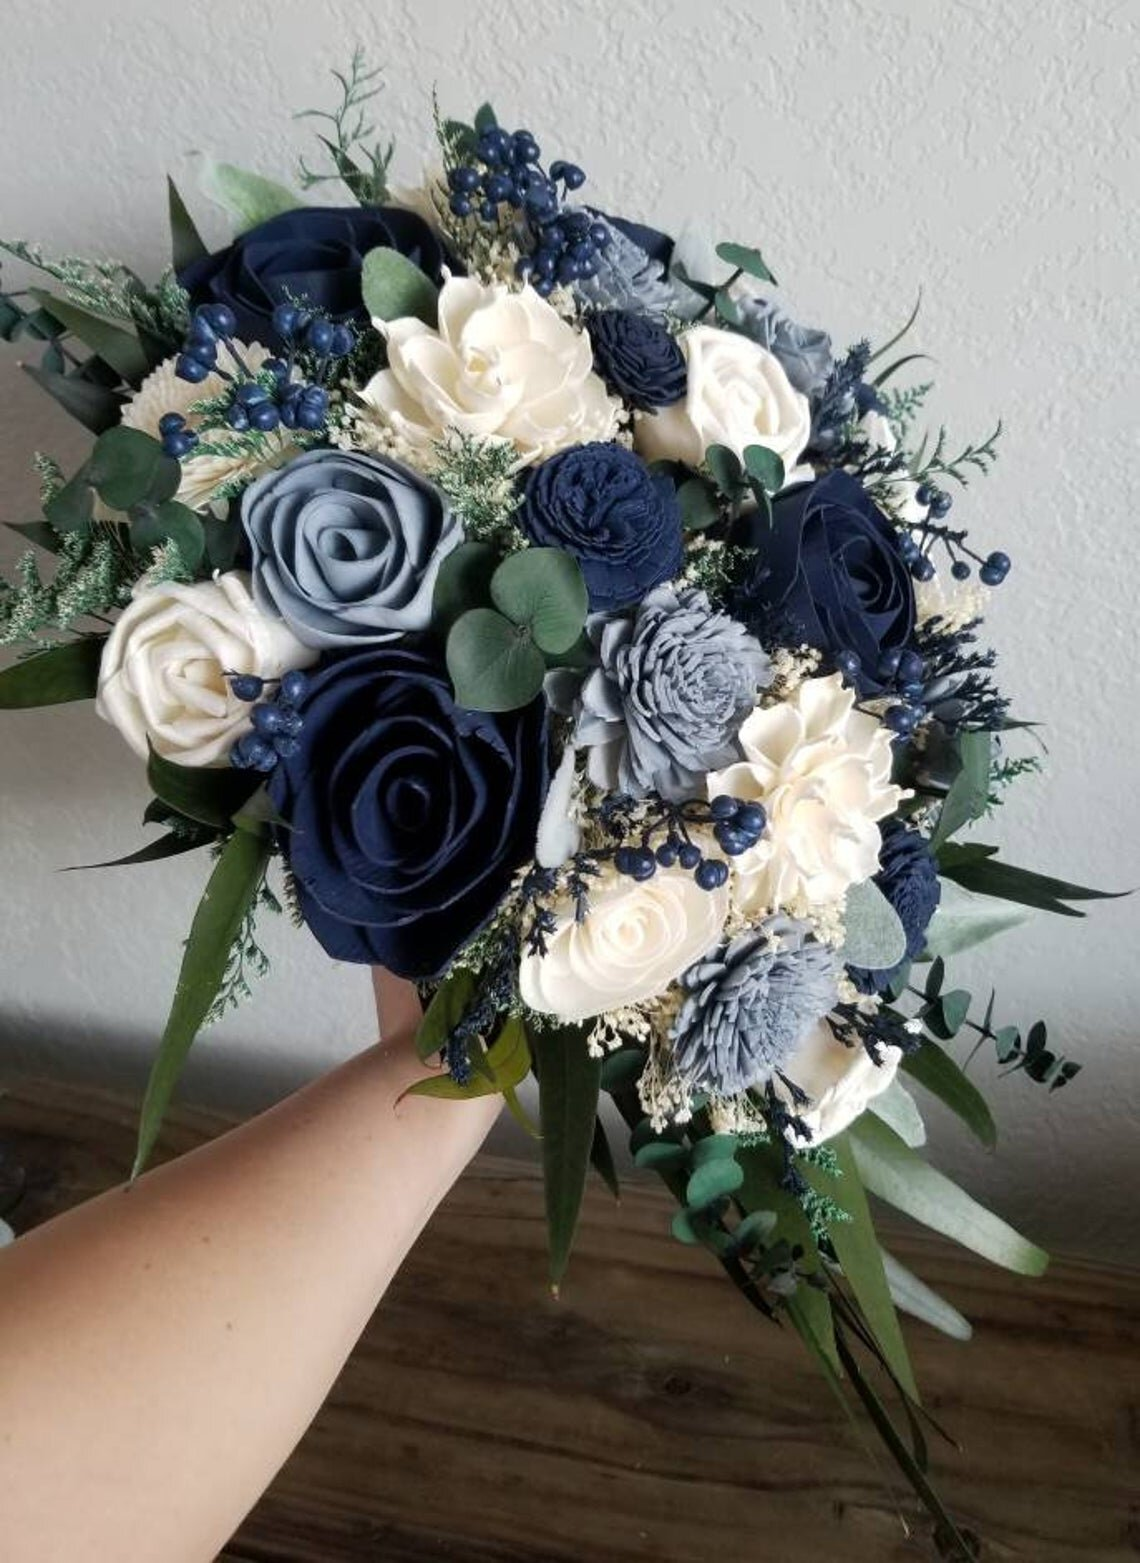 How To Design A Dreamy Dusty Blue And Navy Wedding Inspiration And Advice To Plan The Perfect Wedding